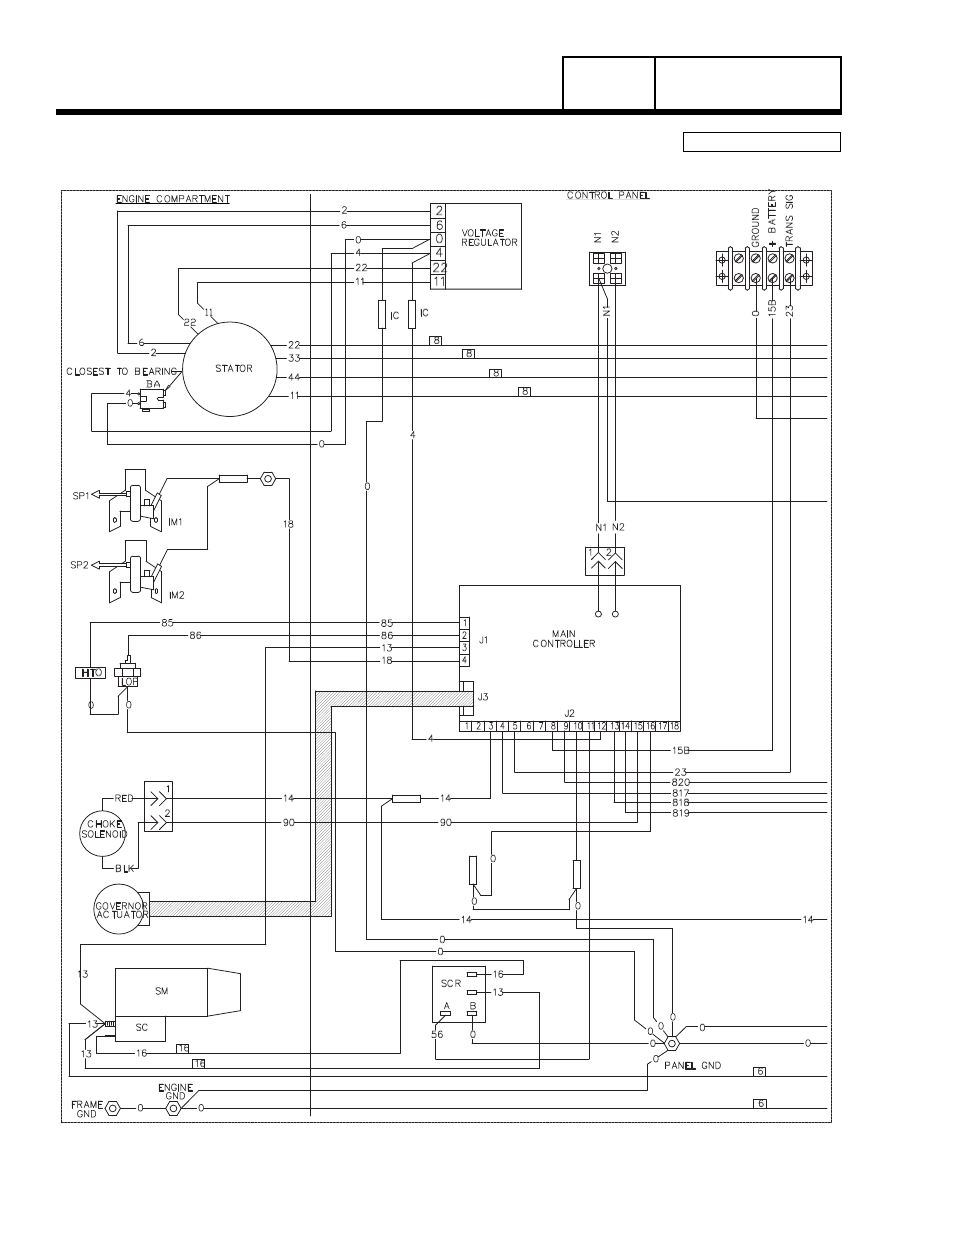 Wiring Diagram 20 Kw Home Standby Group G Part 7 Generac Power Systems 8 Kw Lp User Manual Page 182 192 Original Mode